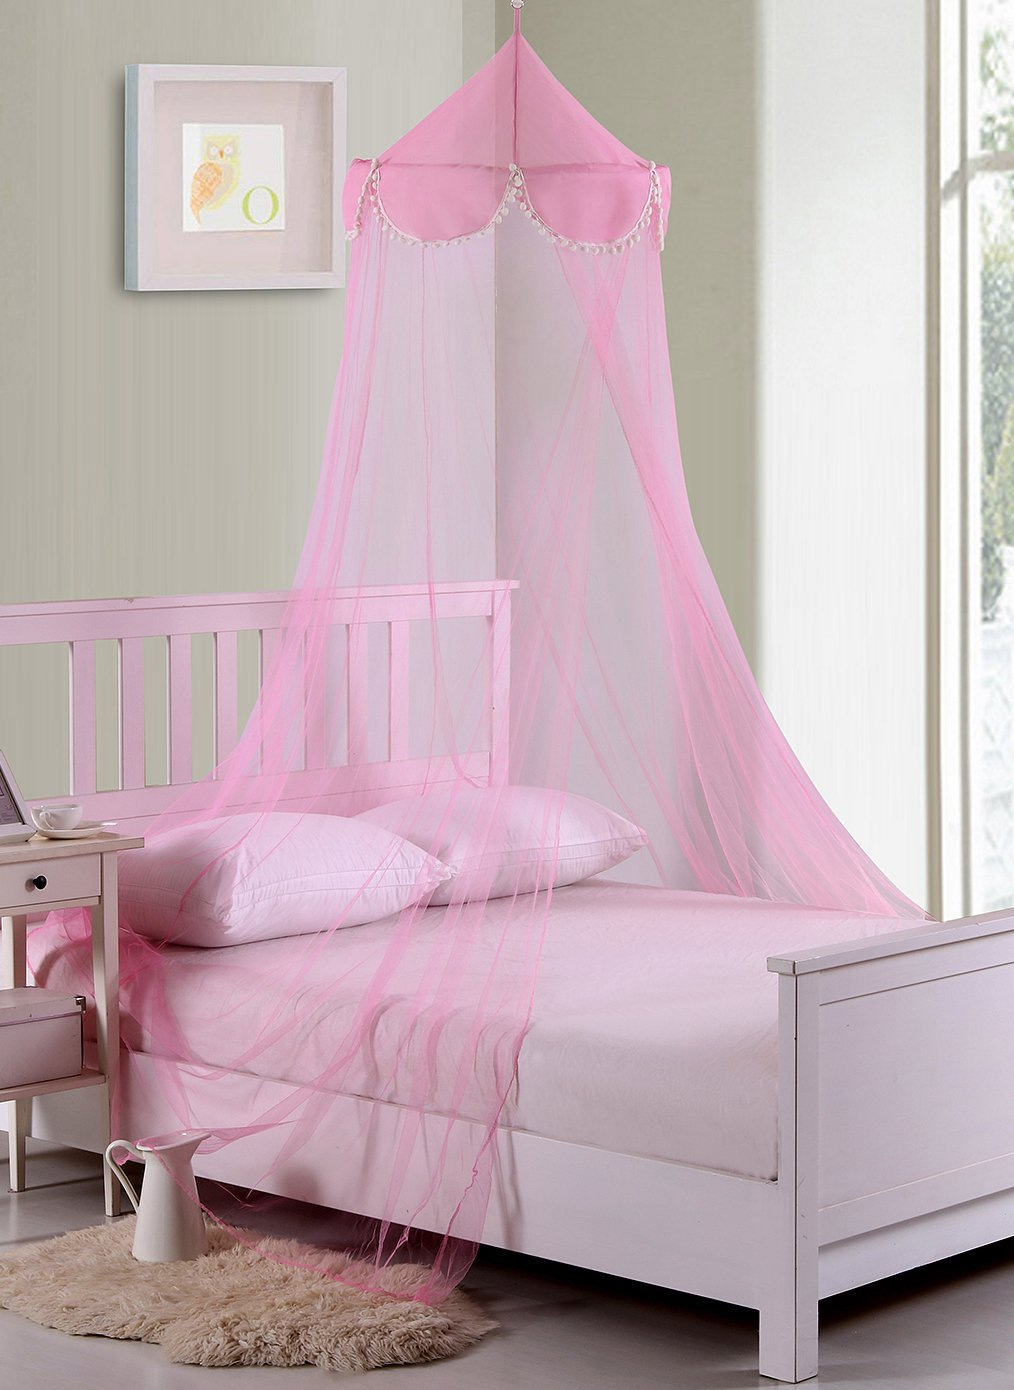 Fantasy Kids Pom Collapsible Hoop Sheer Bed Canopy, One Size, Pink Epoch Hometex inc. 5008282